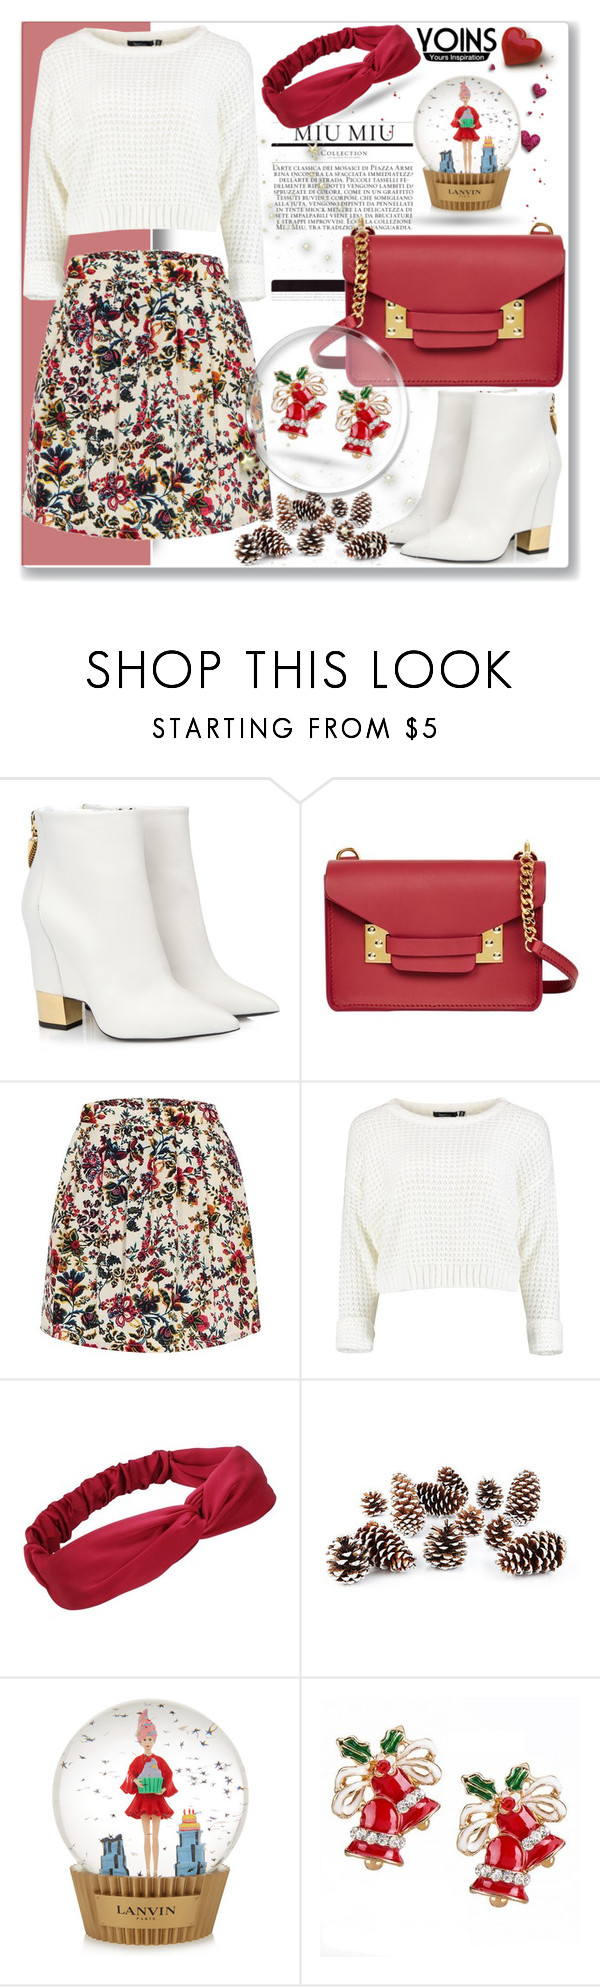 """""""Yoins VI"""" by nerma10 ❤ liked on Polyvore featuring Giuseppe Zanotti, Sophie Hulme, Knud Nielsen Company, Lanvin, MustHave and yoins"""